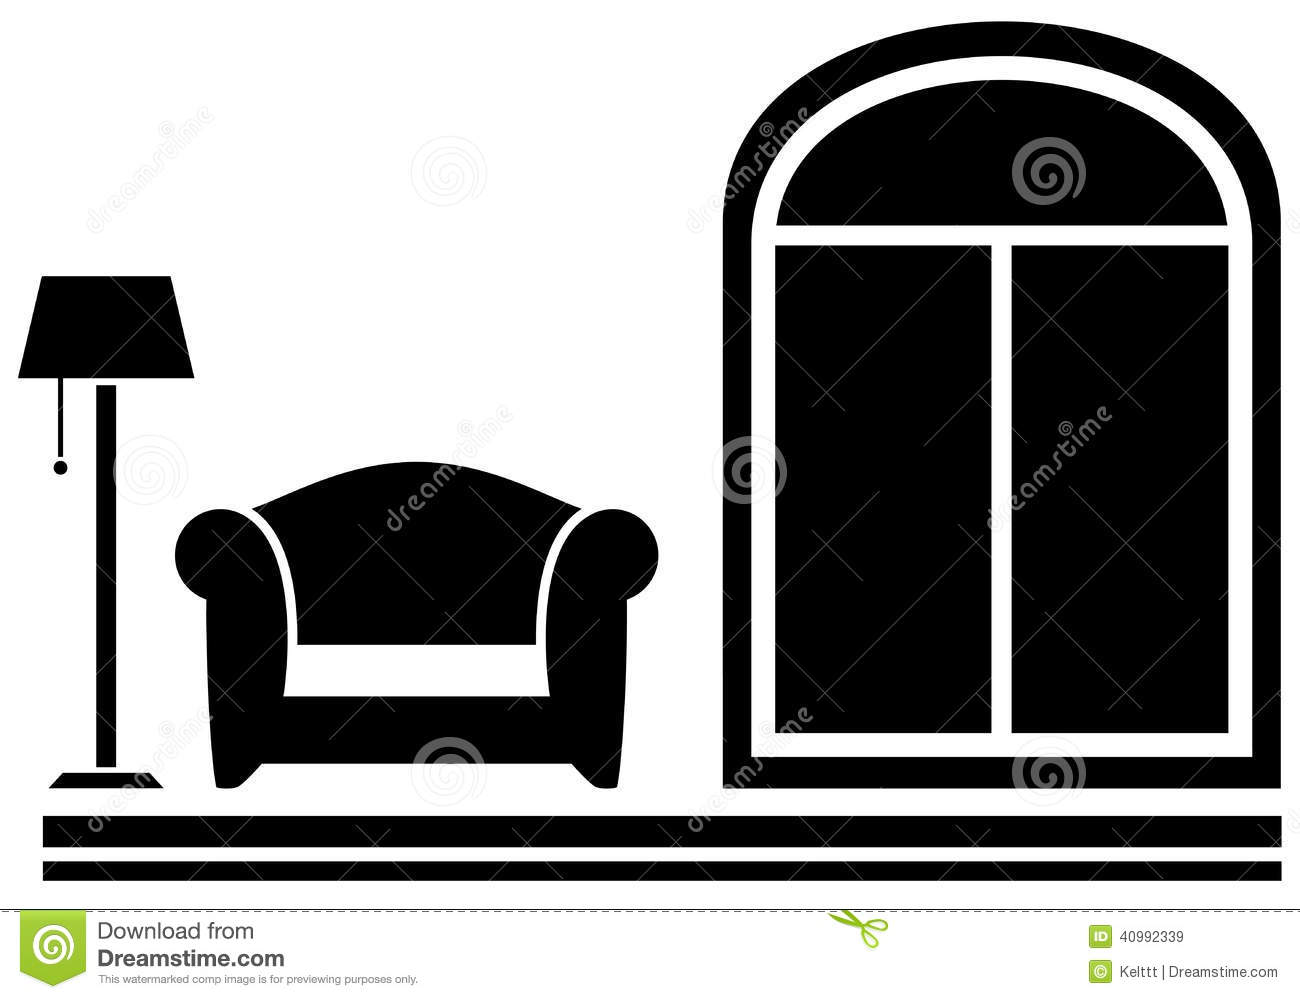 Interior Icon With Armchair, Floor Lamp And Window Stock Vector - Image: 40992339